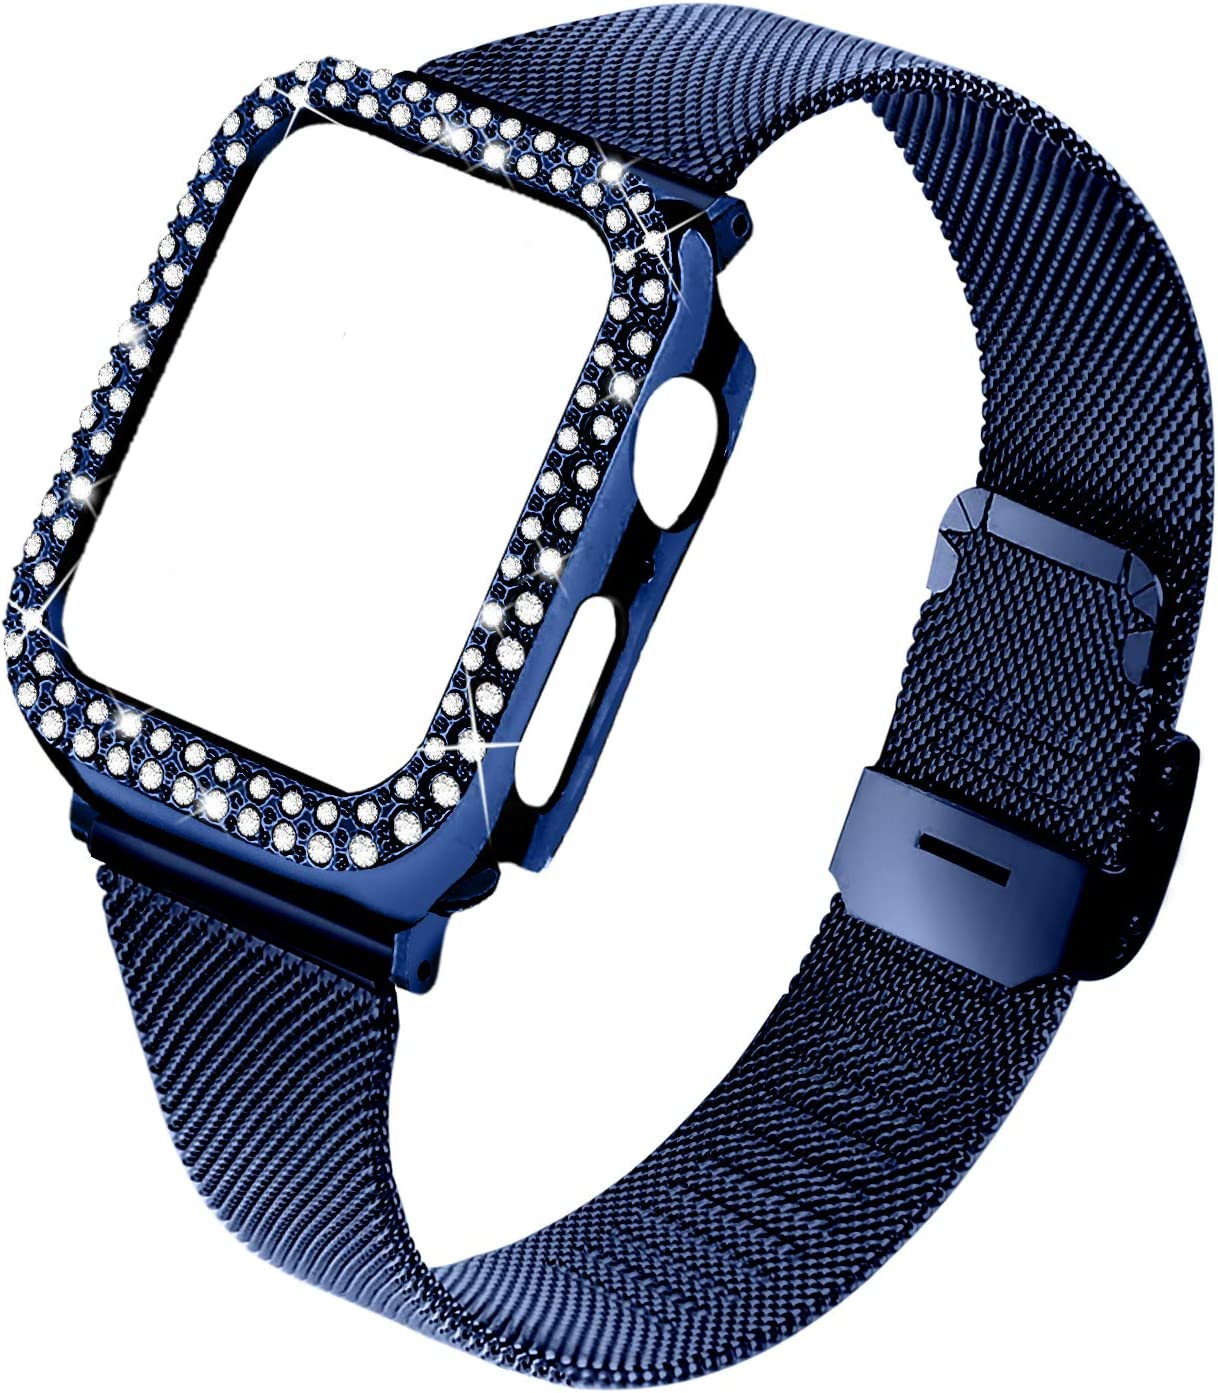 Joyozy Stainless Steel Mesh bands Compatible For Apple Watch 44mm,Women Bling Protective Crystal Diamond Case with Loop Mesh Strap For Iwatch Series 6/SE/5/4(No Tool Needed) (Blue, 44MM)